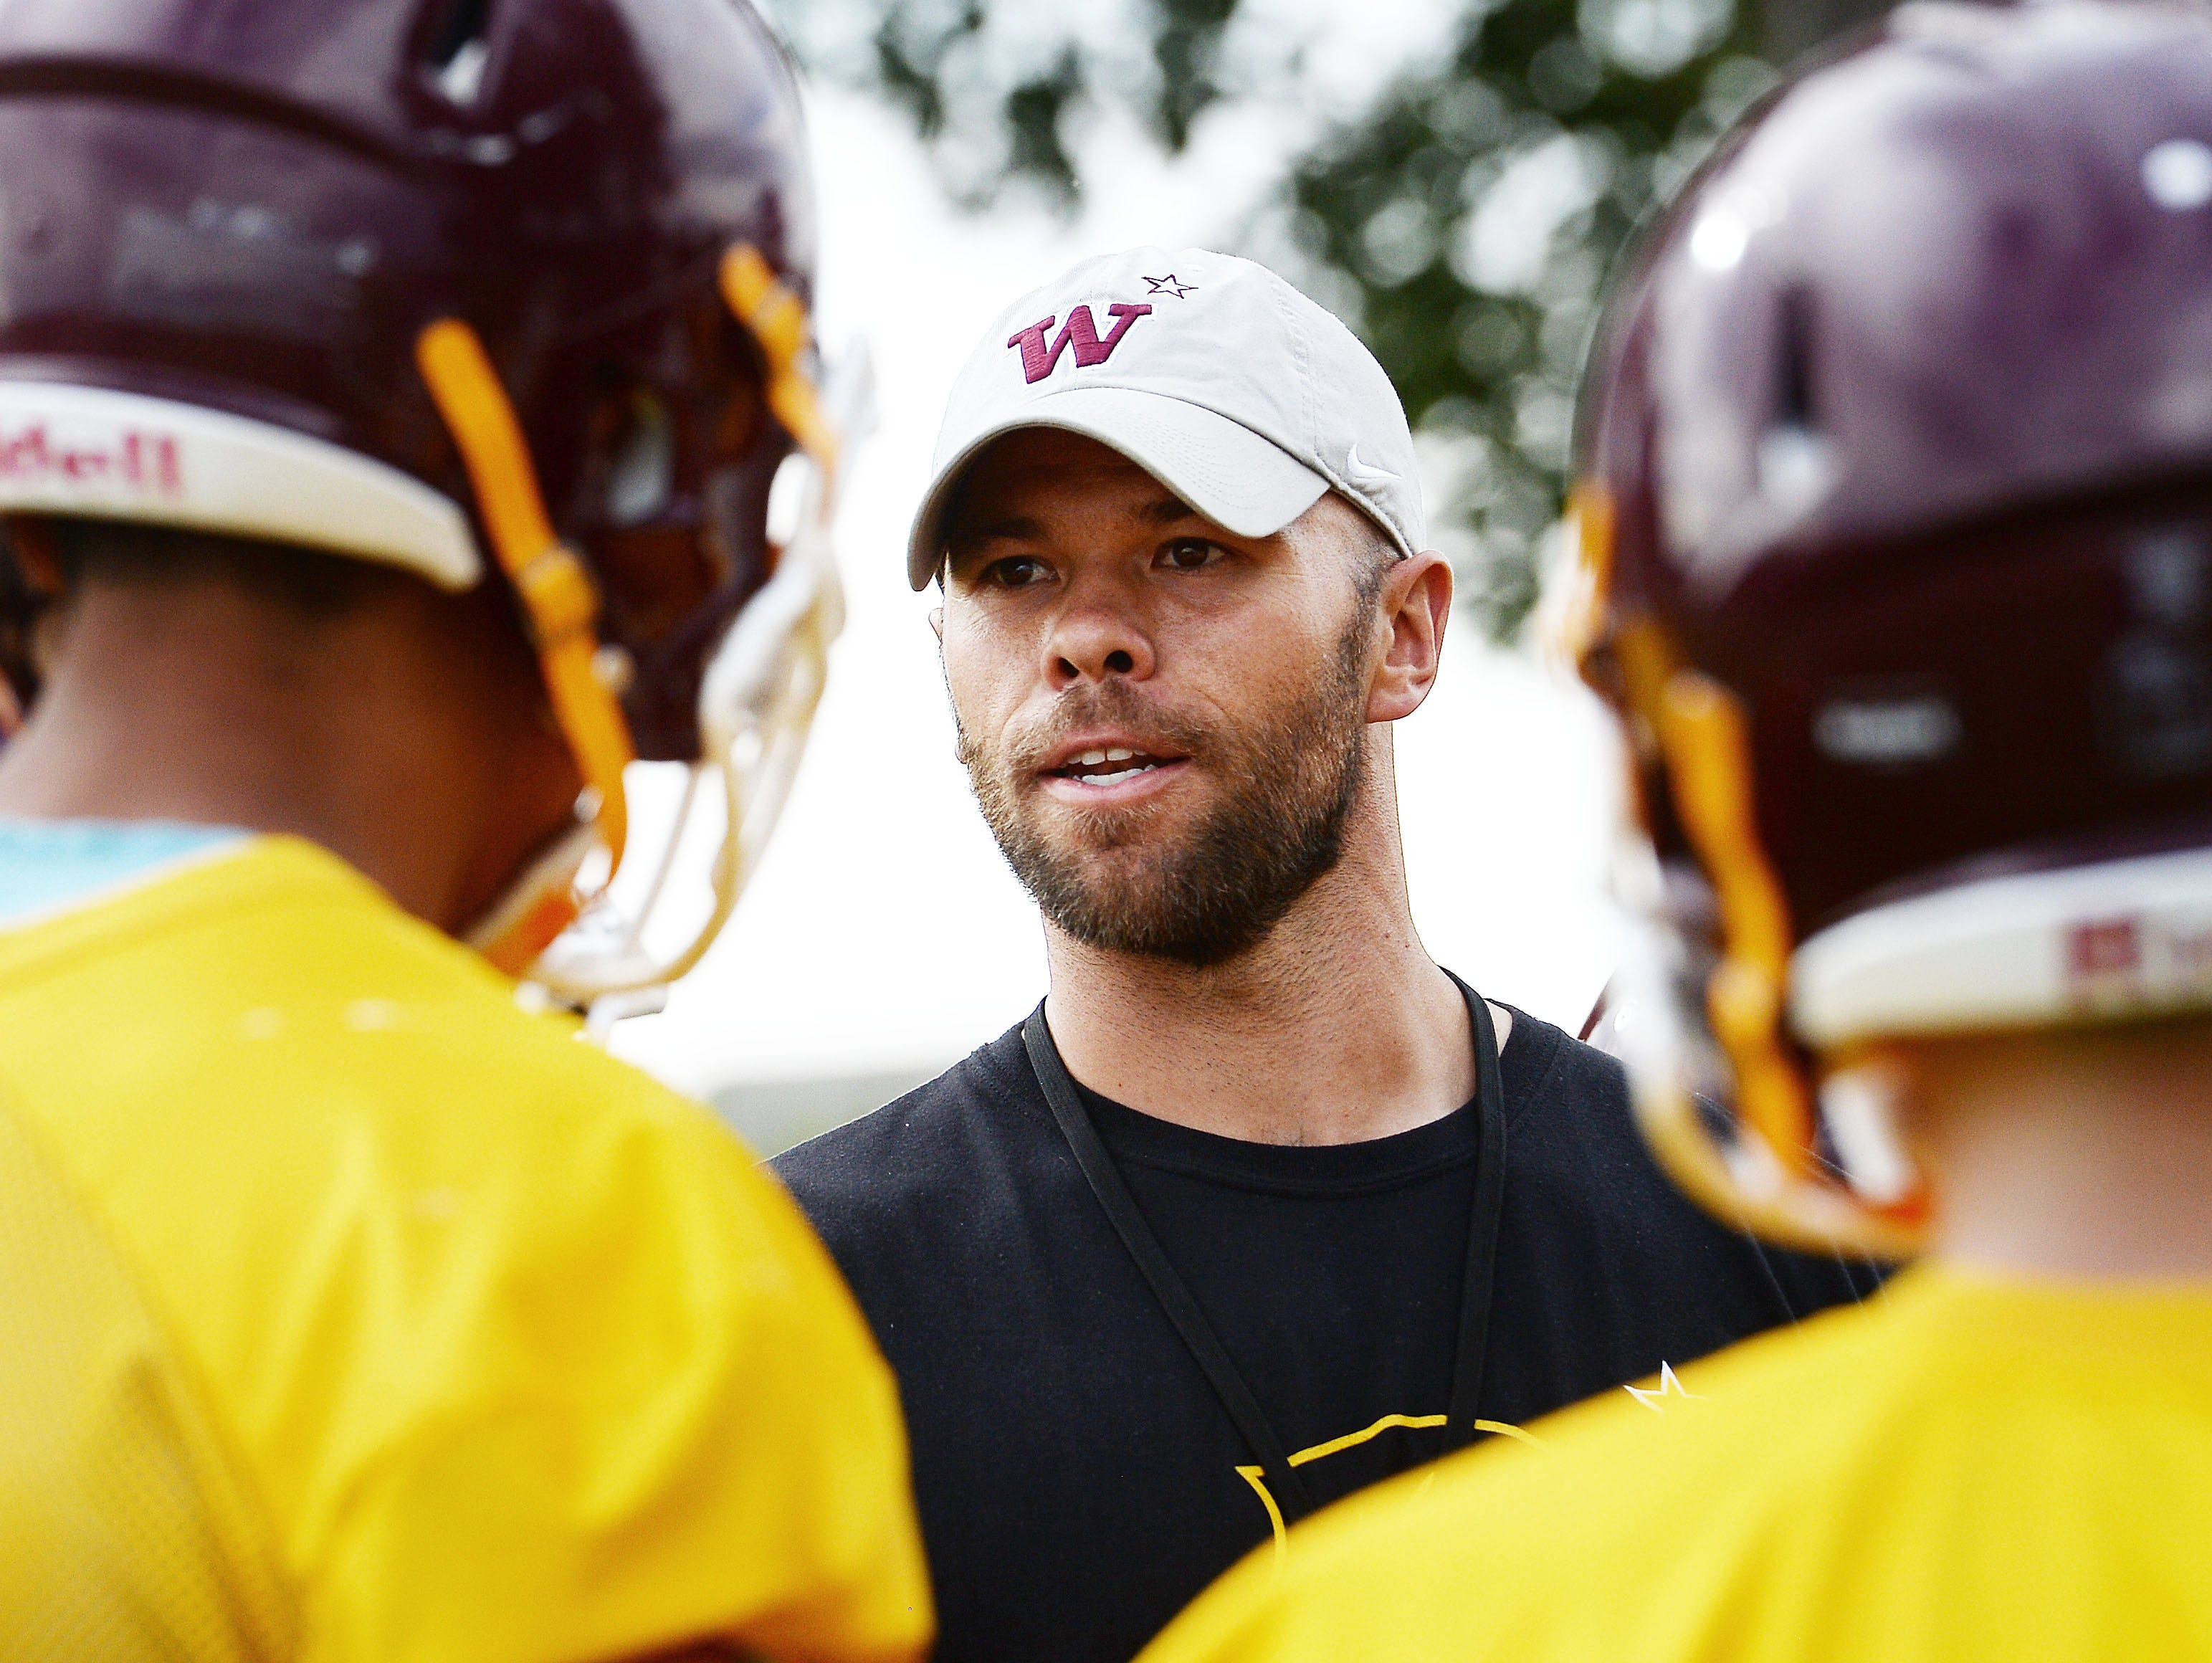 Windsor interim head coach Skylar Brower oversees the Wizards' first football practice of the season Aug. 15. He's replacing Chris Jones, who led Windsor to two state championships in five years, including in 2015.